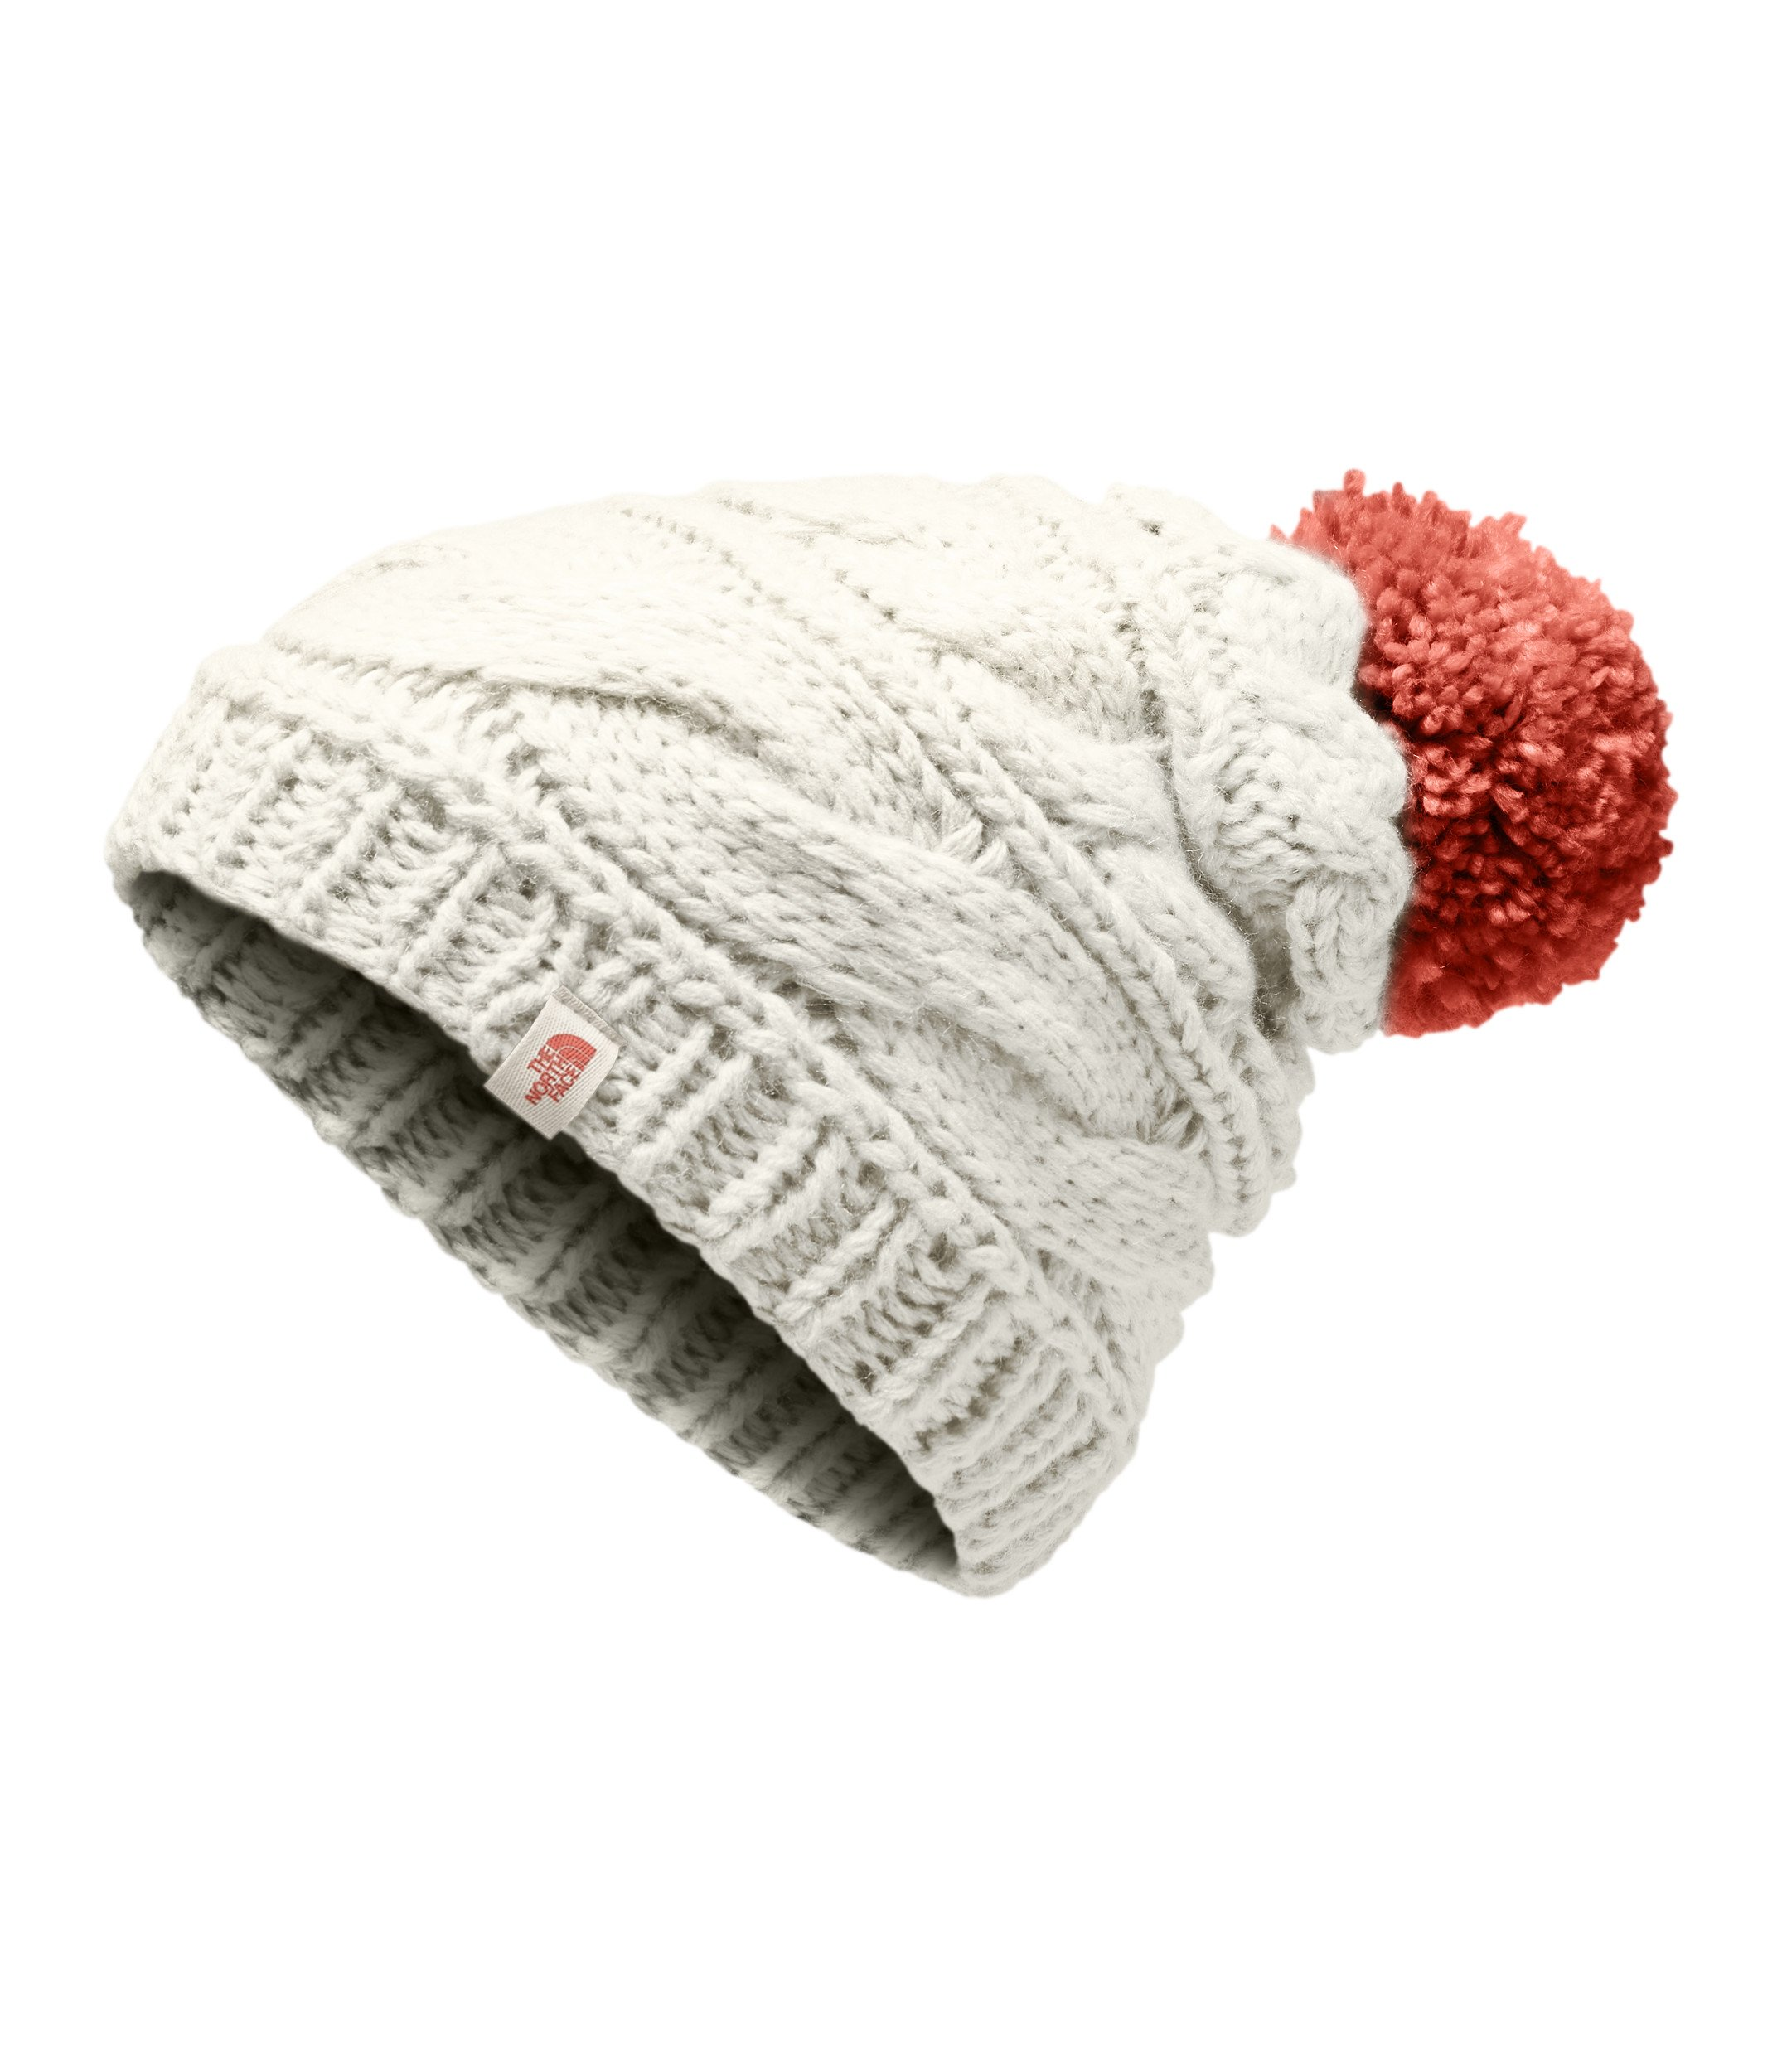 The North Face Women's Triple Cable Beanie - Wild Oat Heather & Faded Rose - OS by The North Face